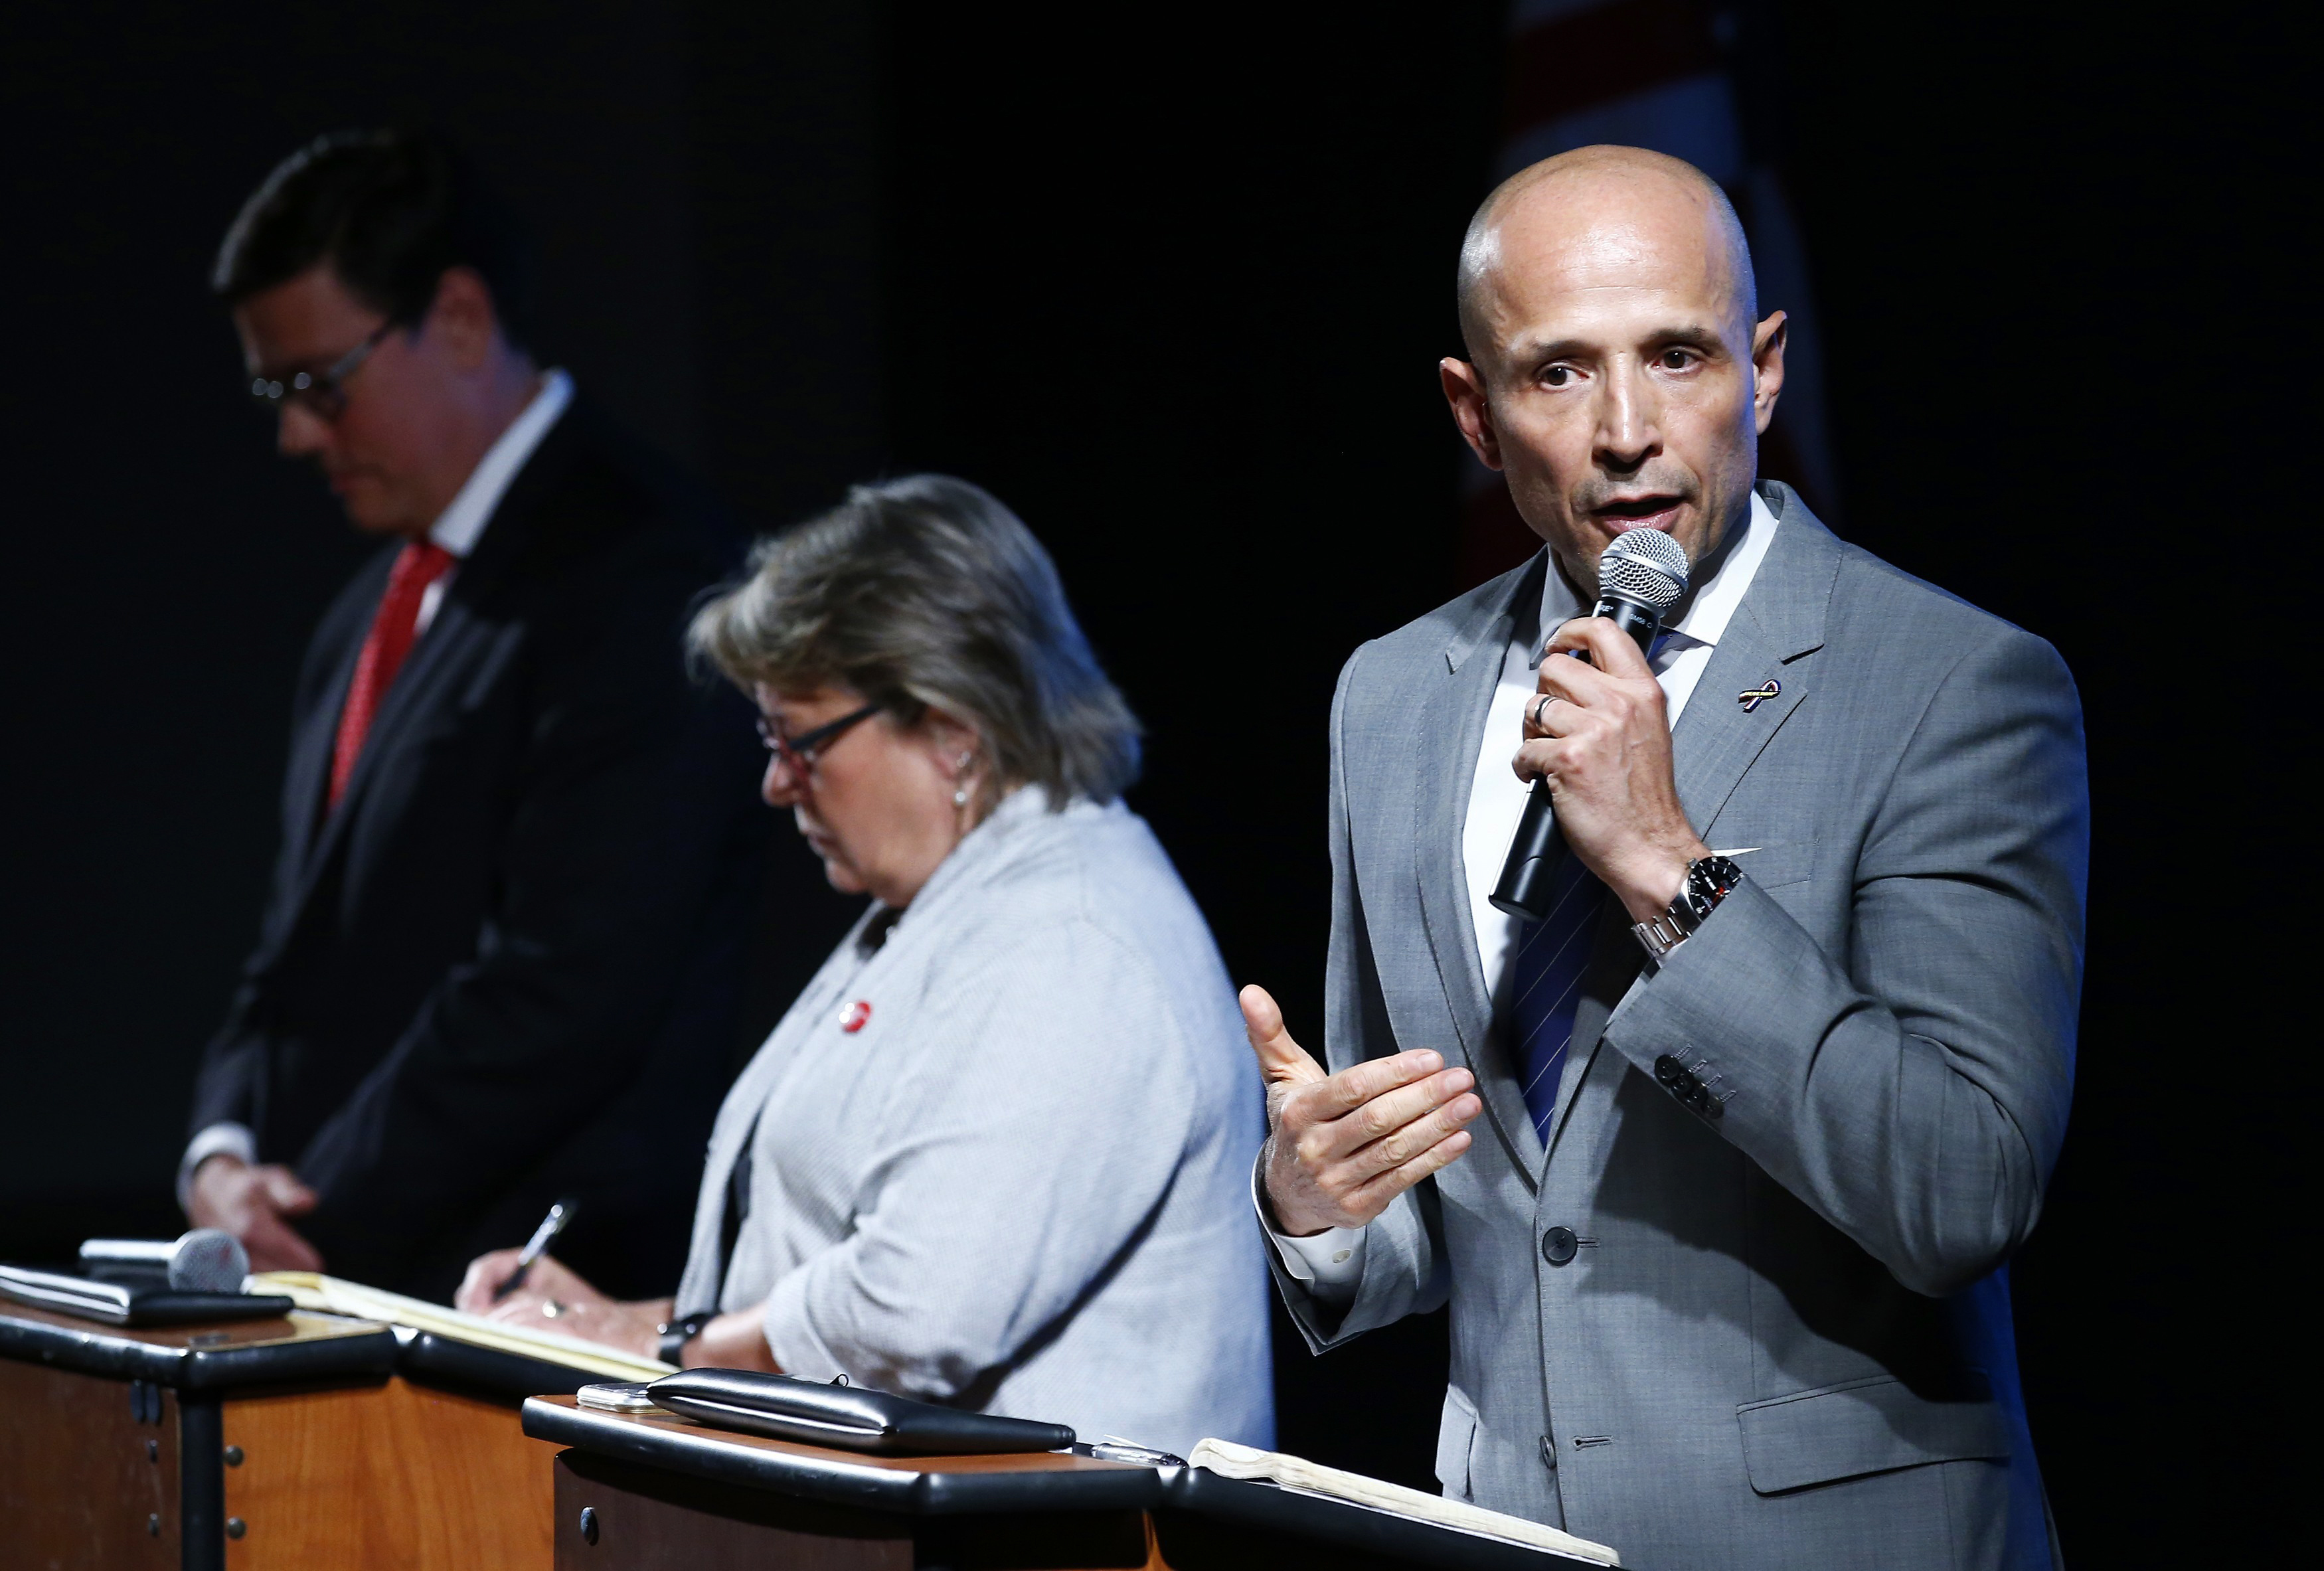 Democratic Arizona gubernatorial candidate David Garcia, right, answers a question as he debates with other candidates.